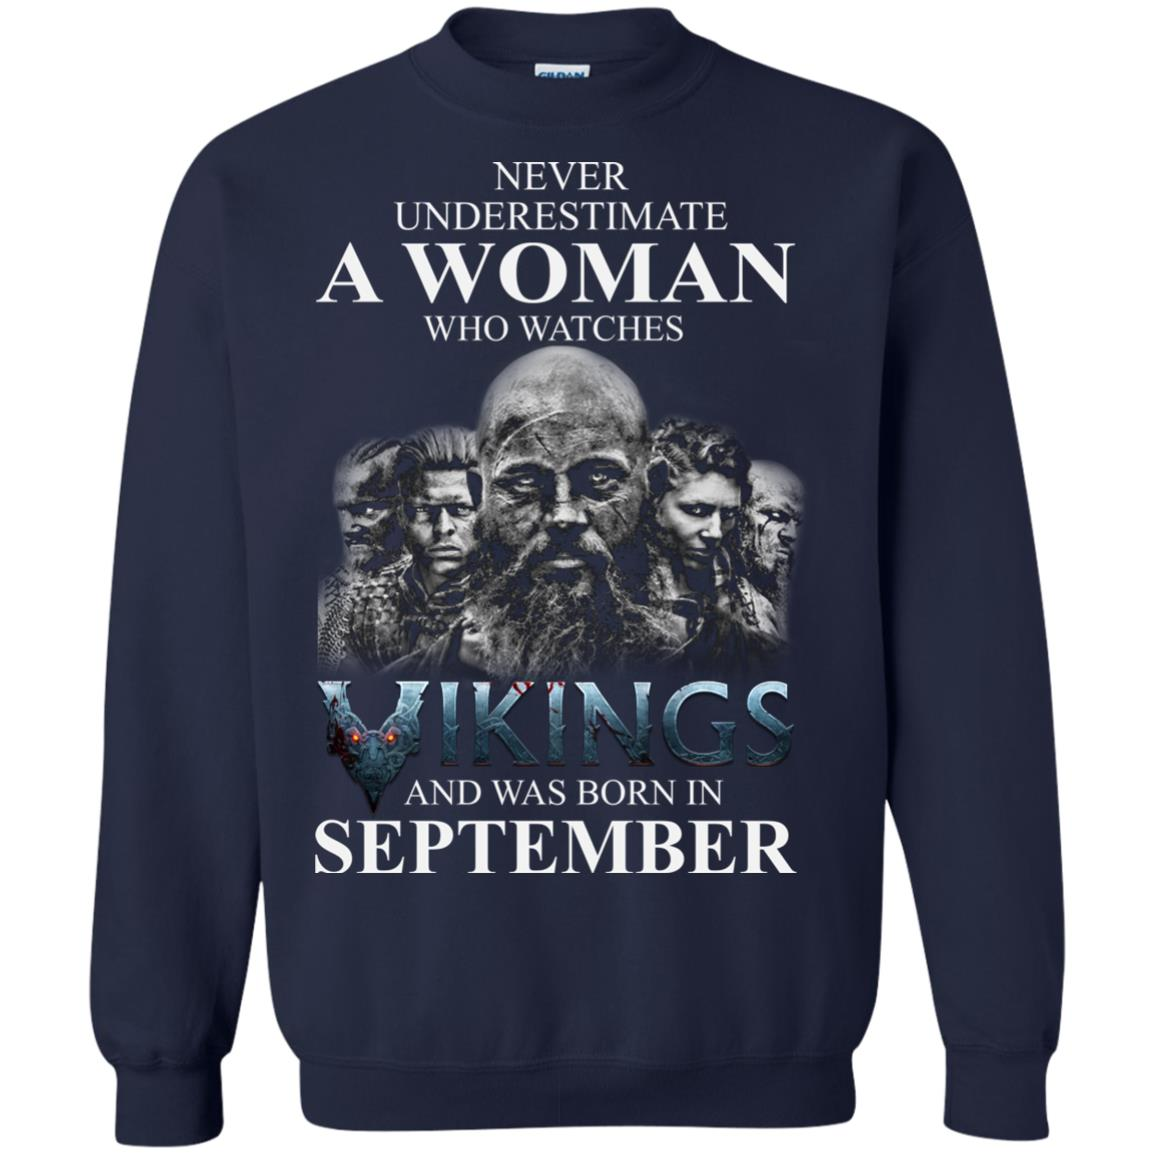 image 1262 - Never Underestimate A woman who watches Vikings and was born in September shirt